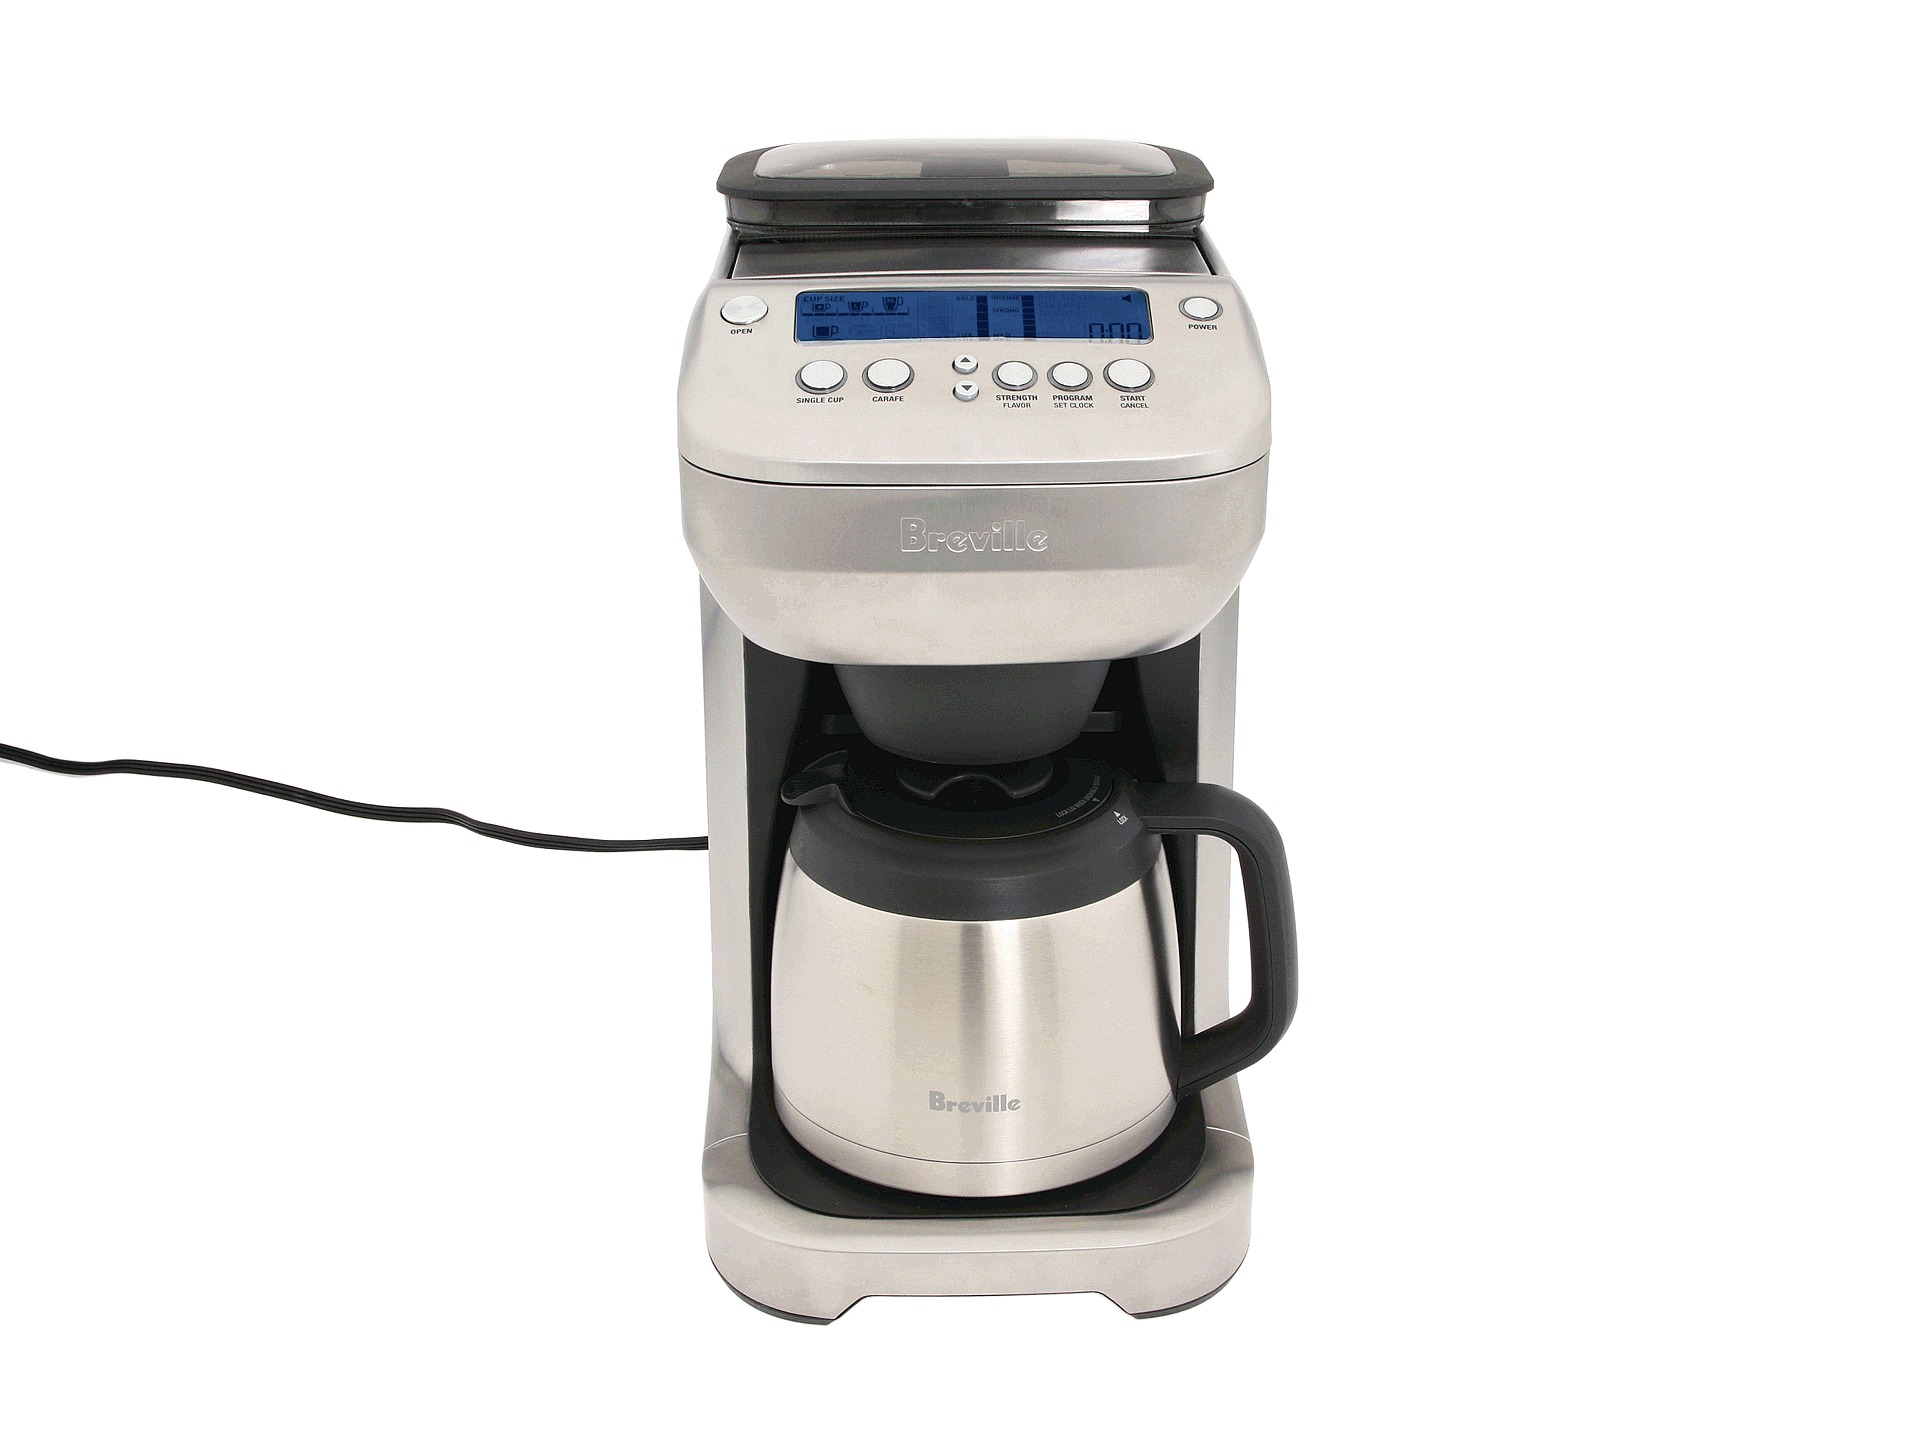 Thermal Coffee Maker Best Reviews : No results for breville bdc600xl the youbrew thermal coffee maker - Search Zappos.com